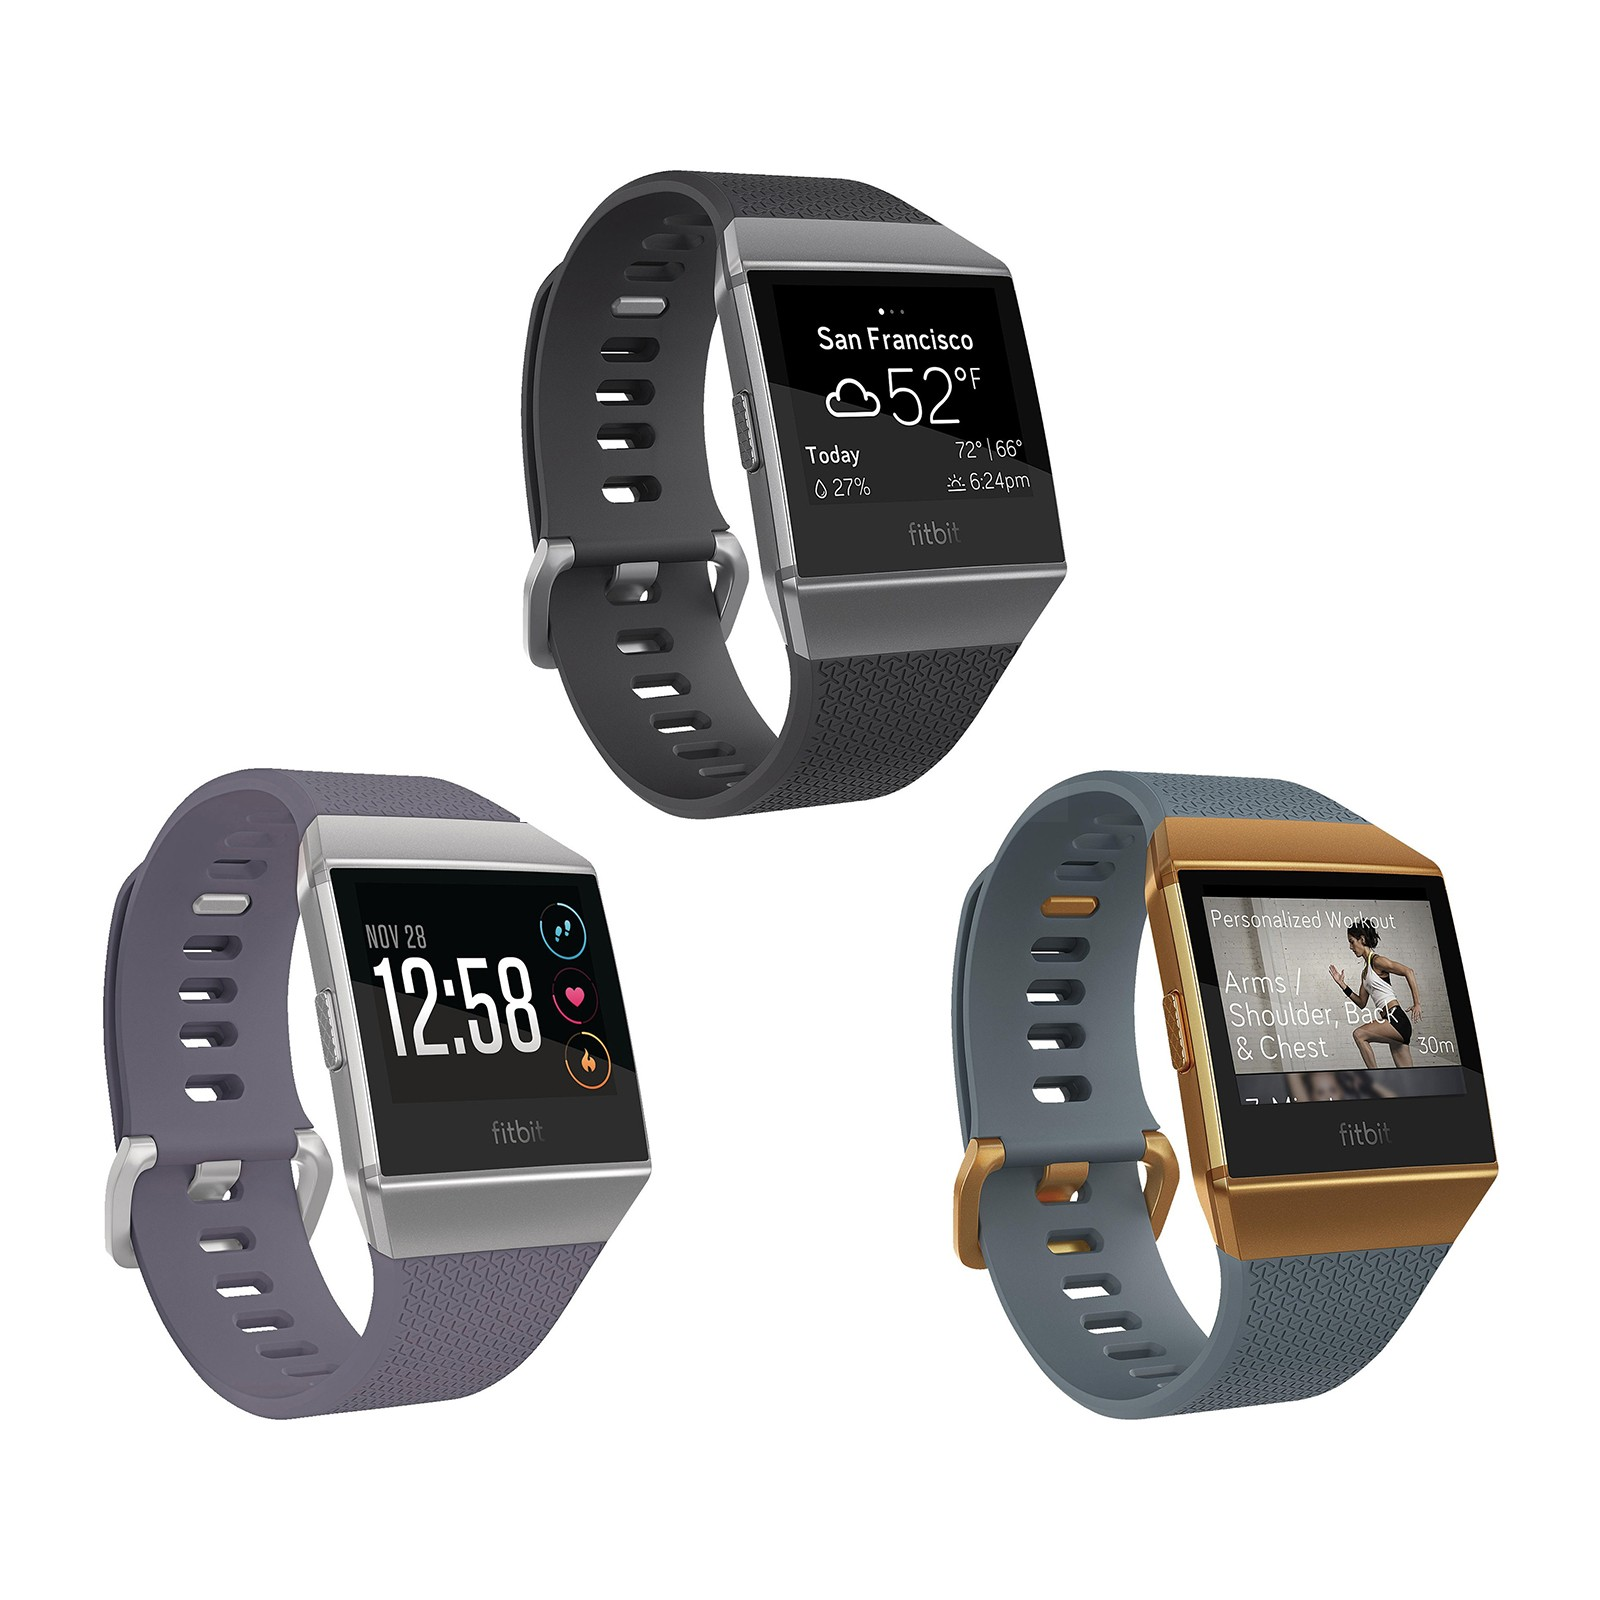 Save 28% on the Fitbit Ionic fitness smartwatch